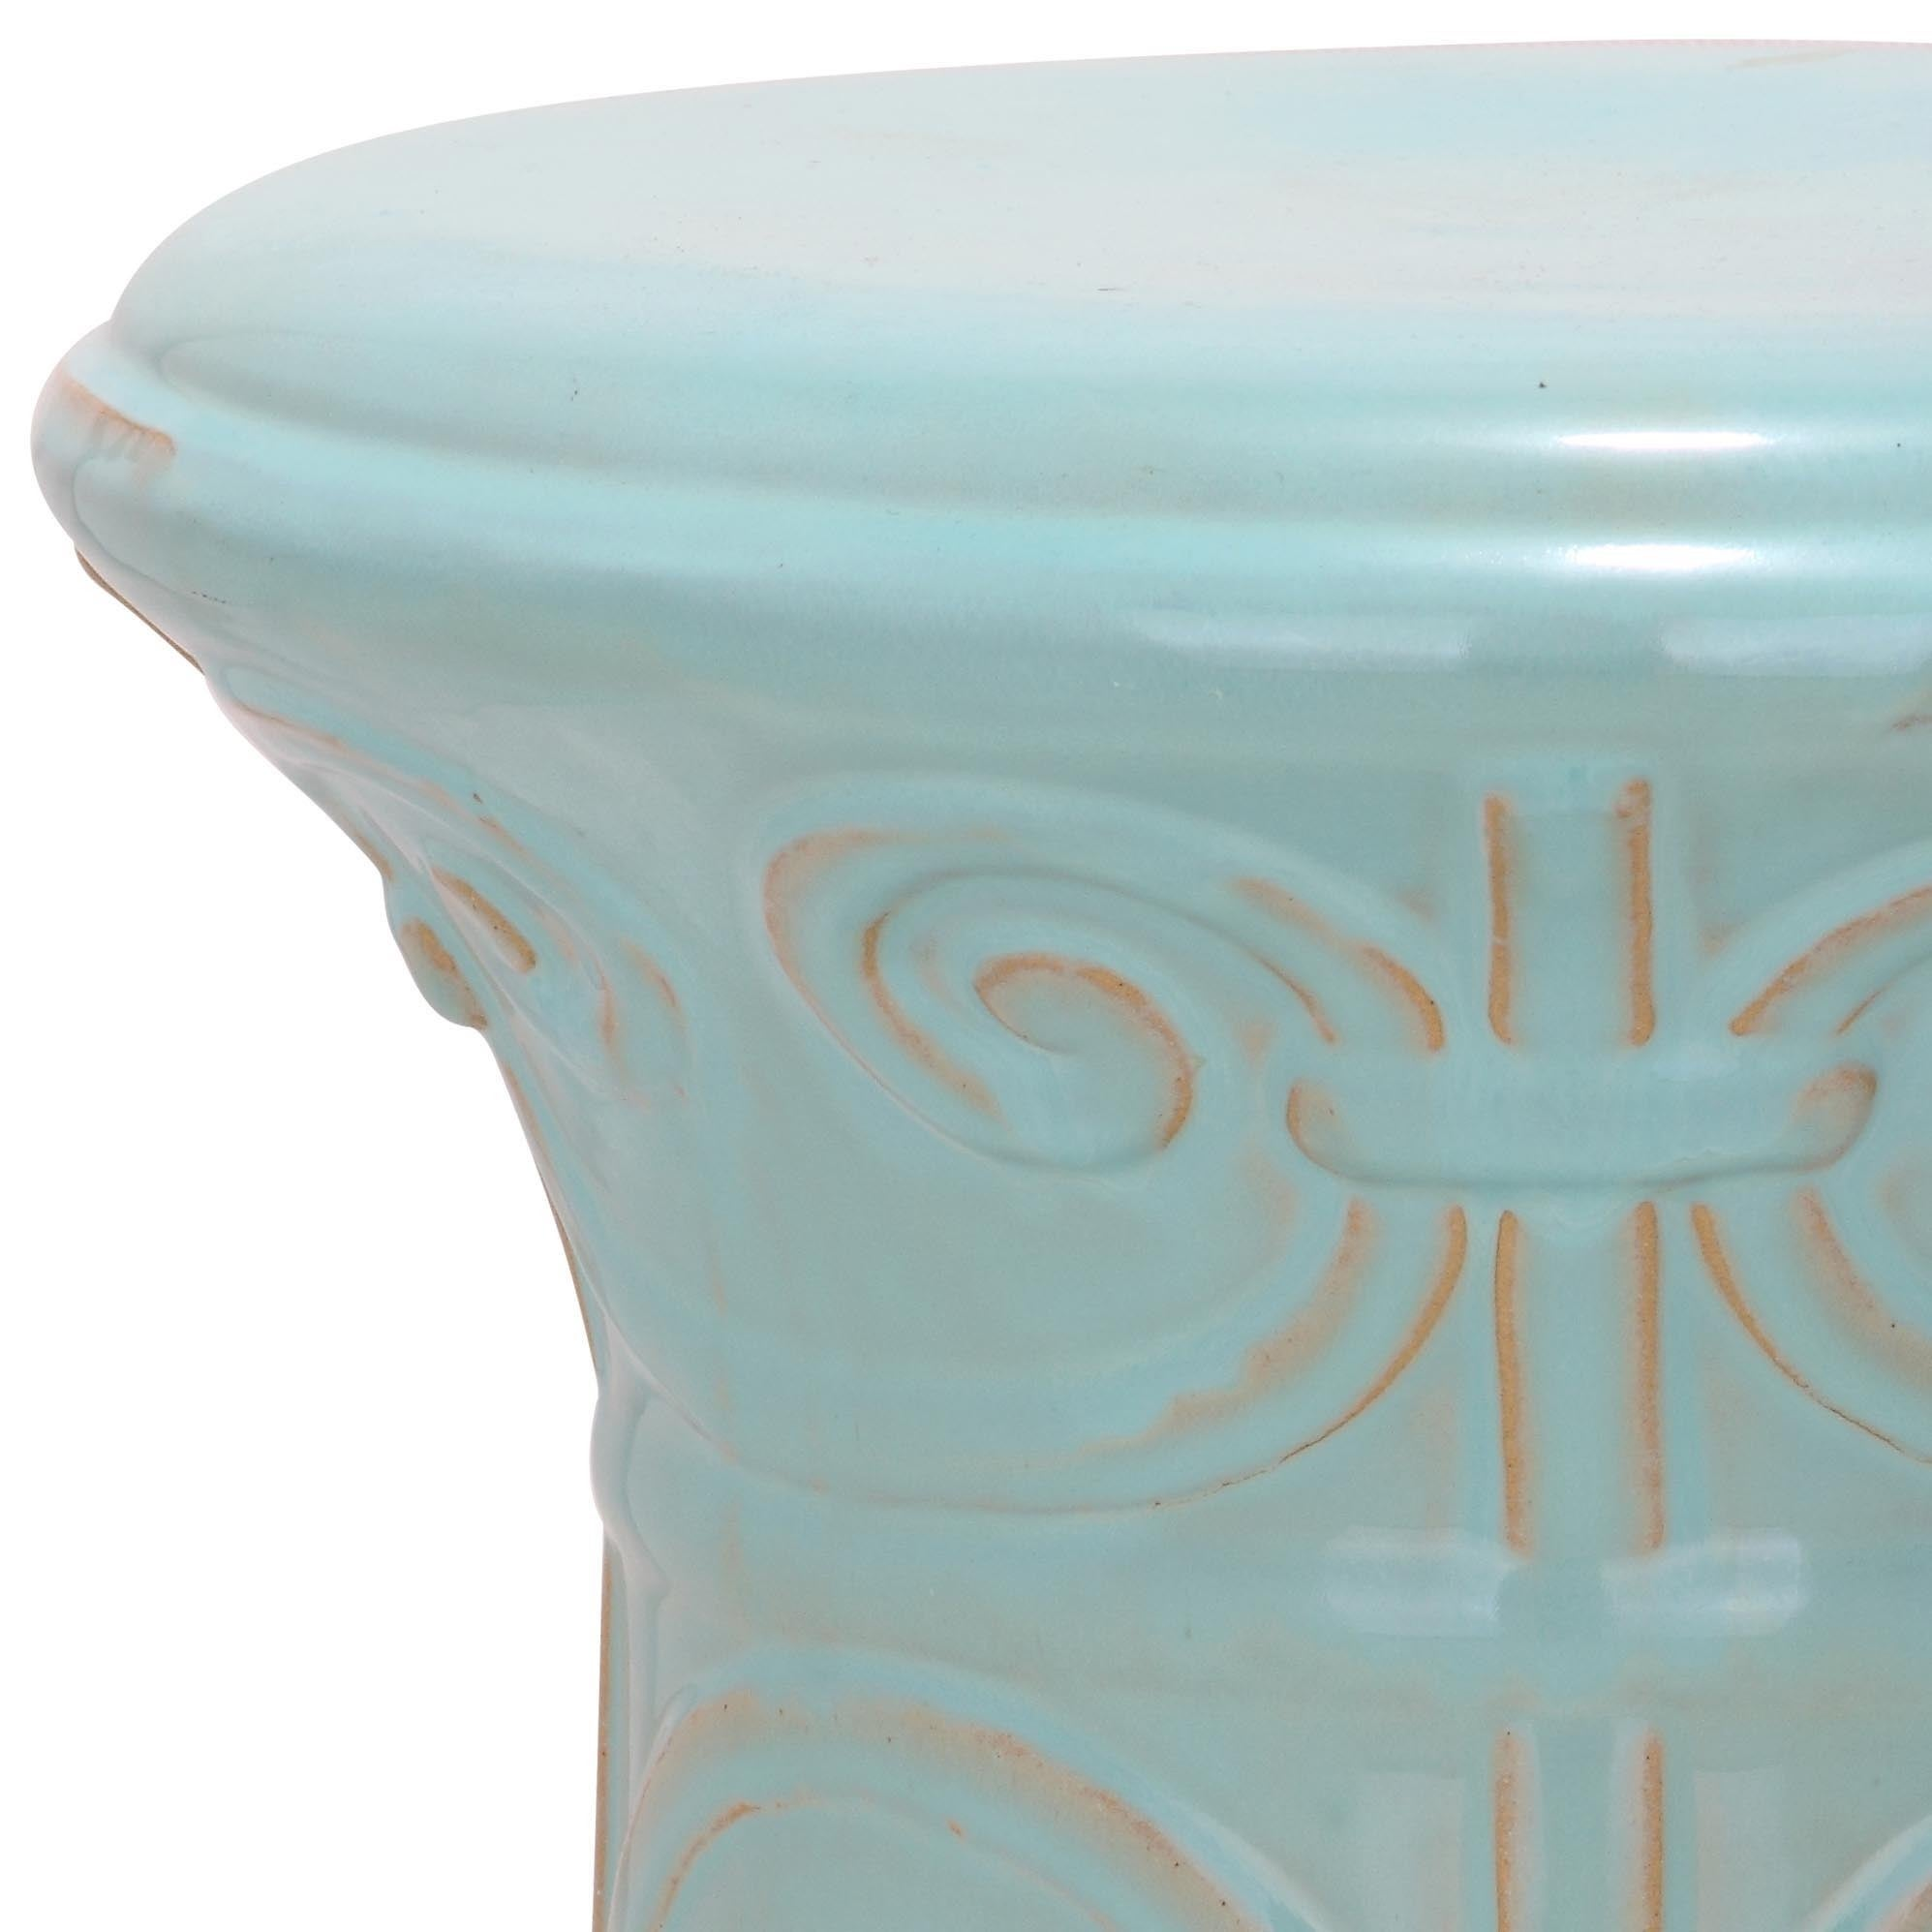 Super Safavieh Light Aqua Imperial Scroll Ceramic Garden Stool 12 3 X 12 3 X 15 5 Andrewgaddart Wooden Chair Designs For Living Room Andrewgaddartcom